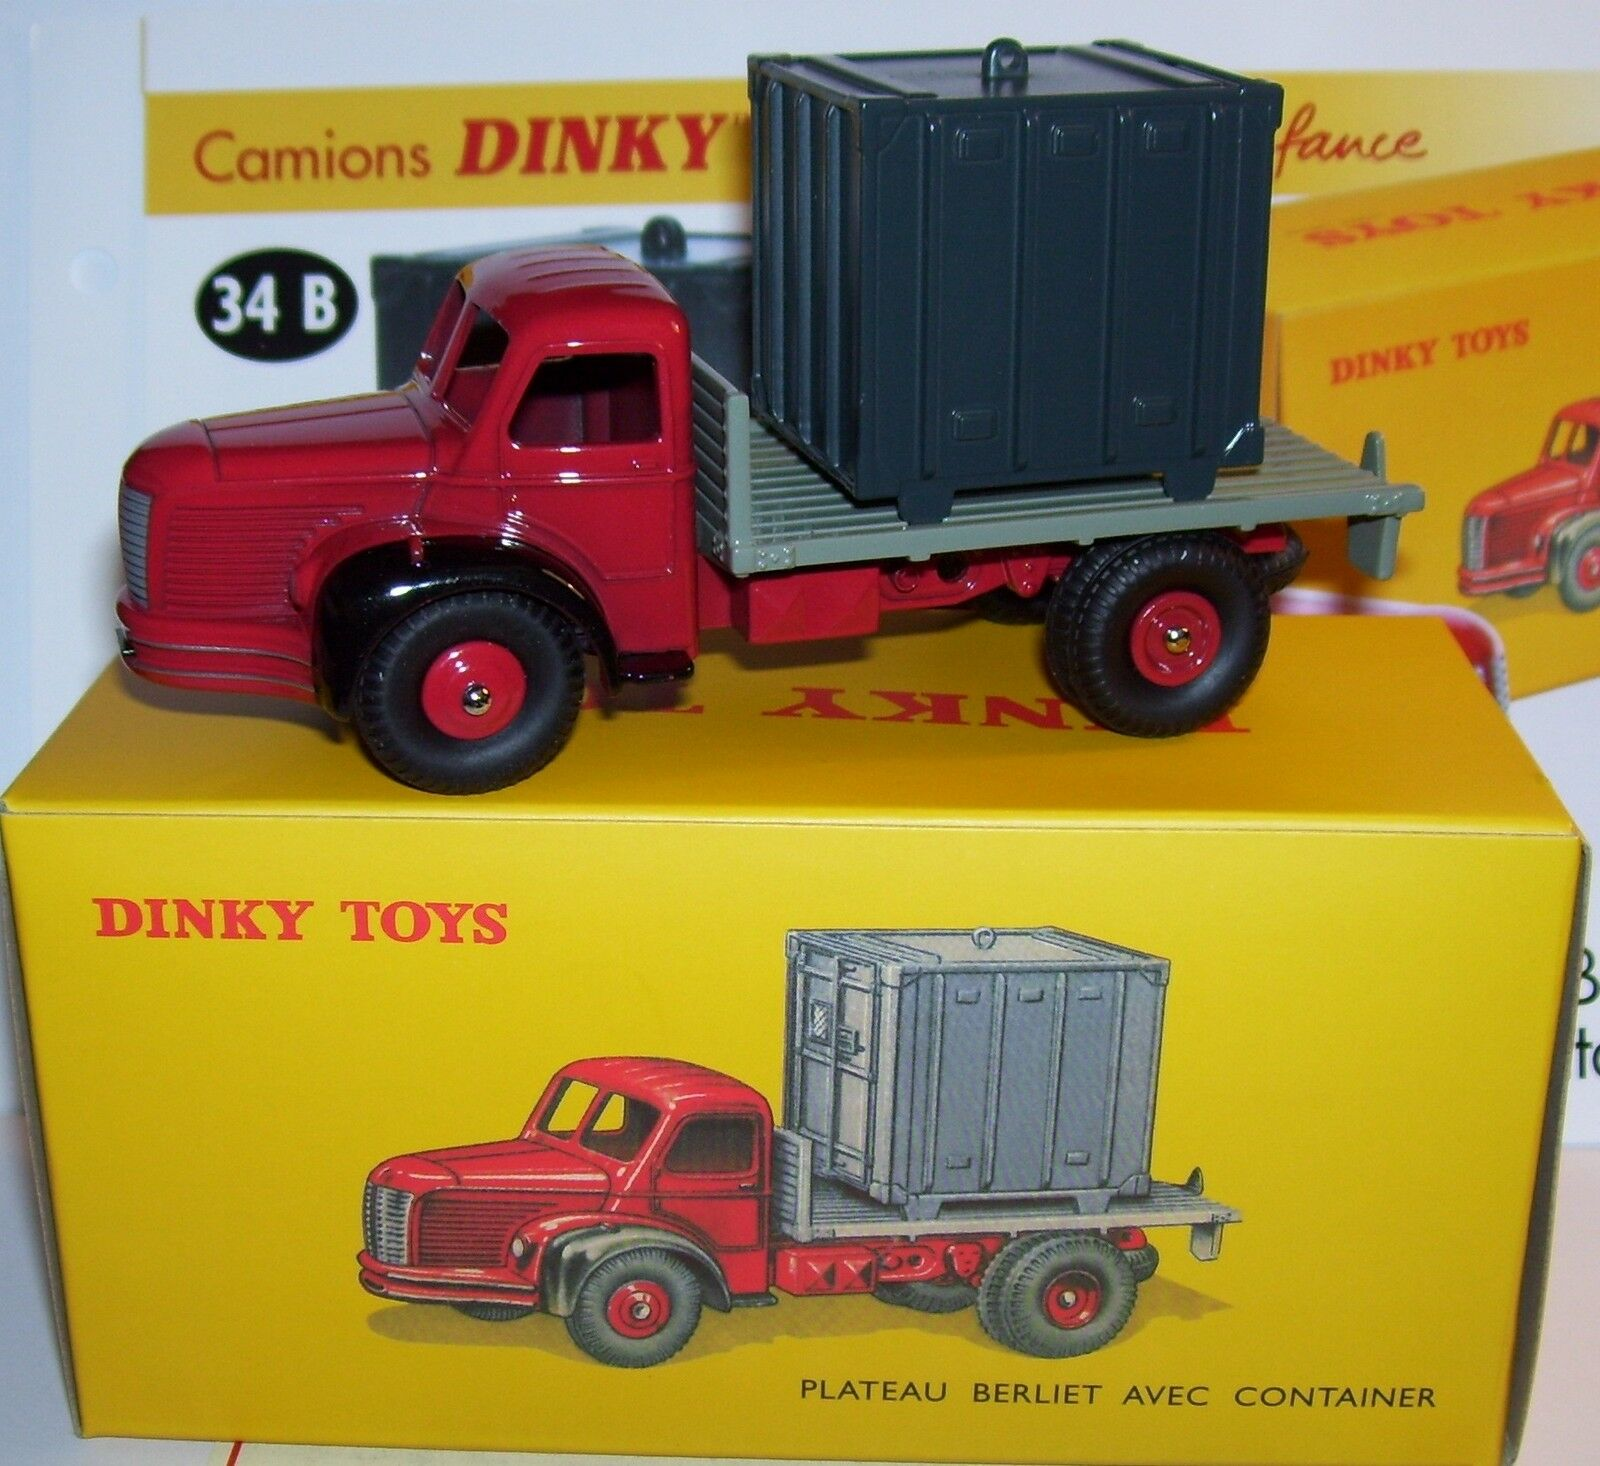 DINKY TOYS ATLAS PLATEAU BERLIET & CONTAINER CONTAINER CONTAINER REF 34B IN BOX NEUF sans documents 9a2bdd